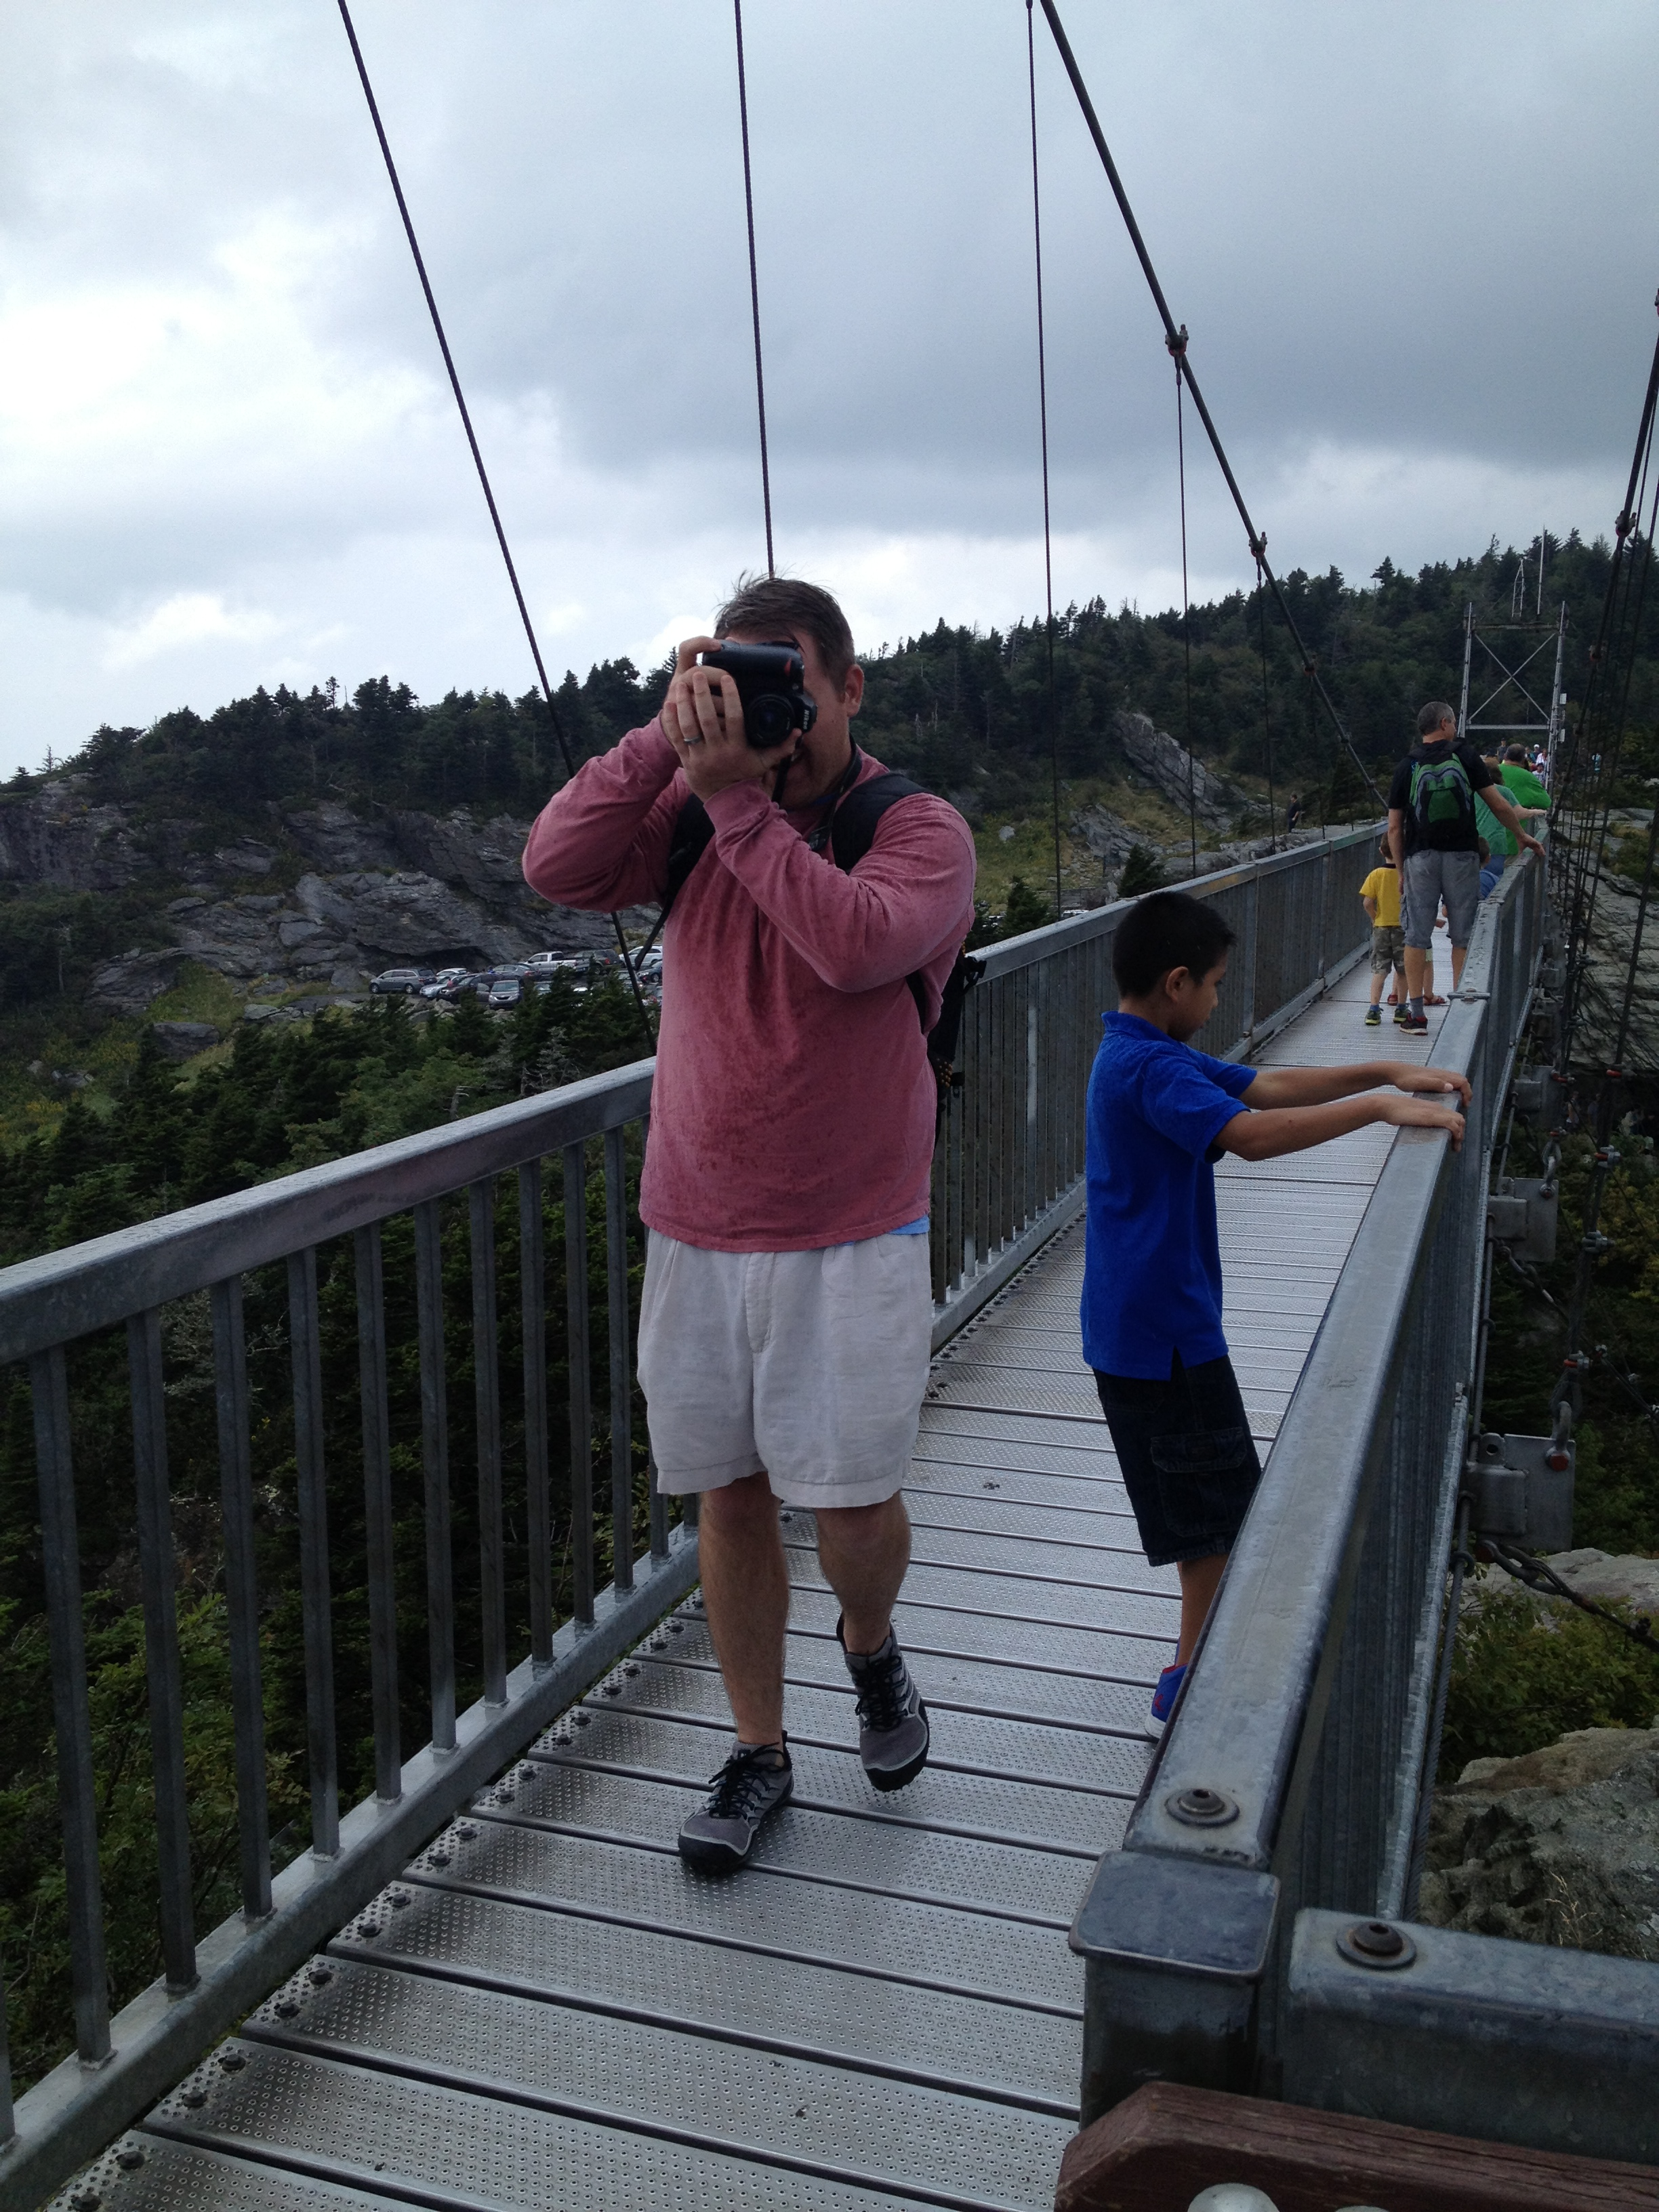 Me taking a picture of Dustin taking my picture... crossing the bridge, of course!